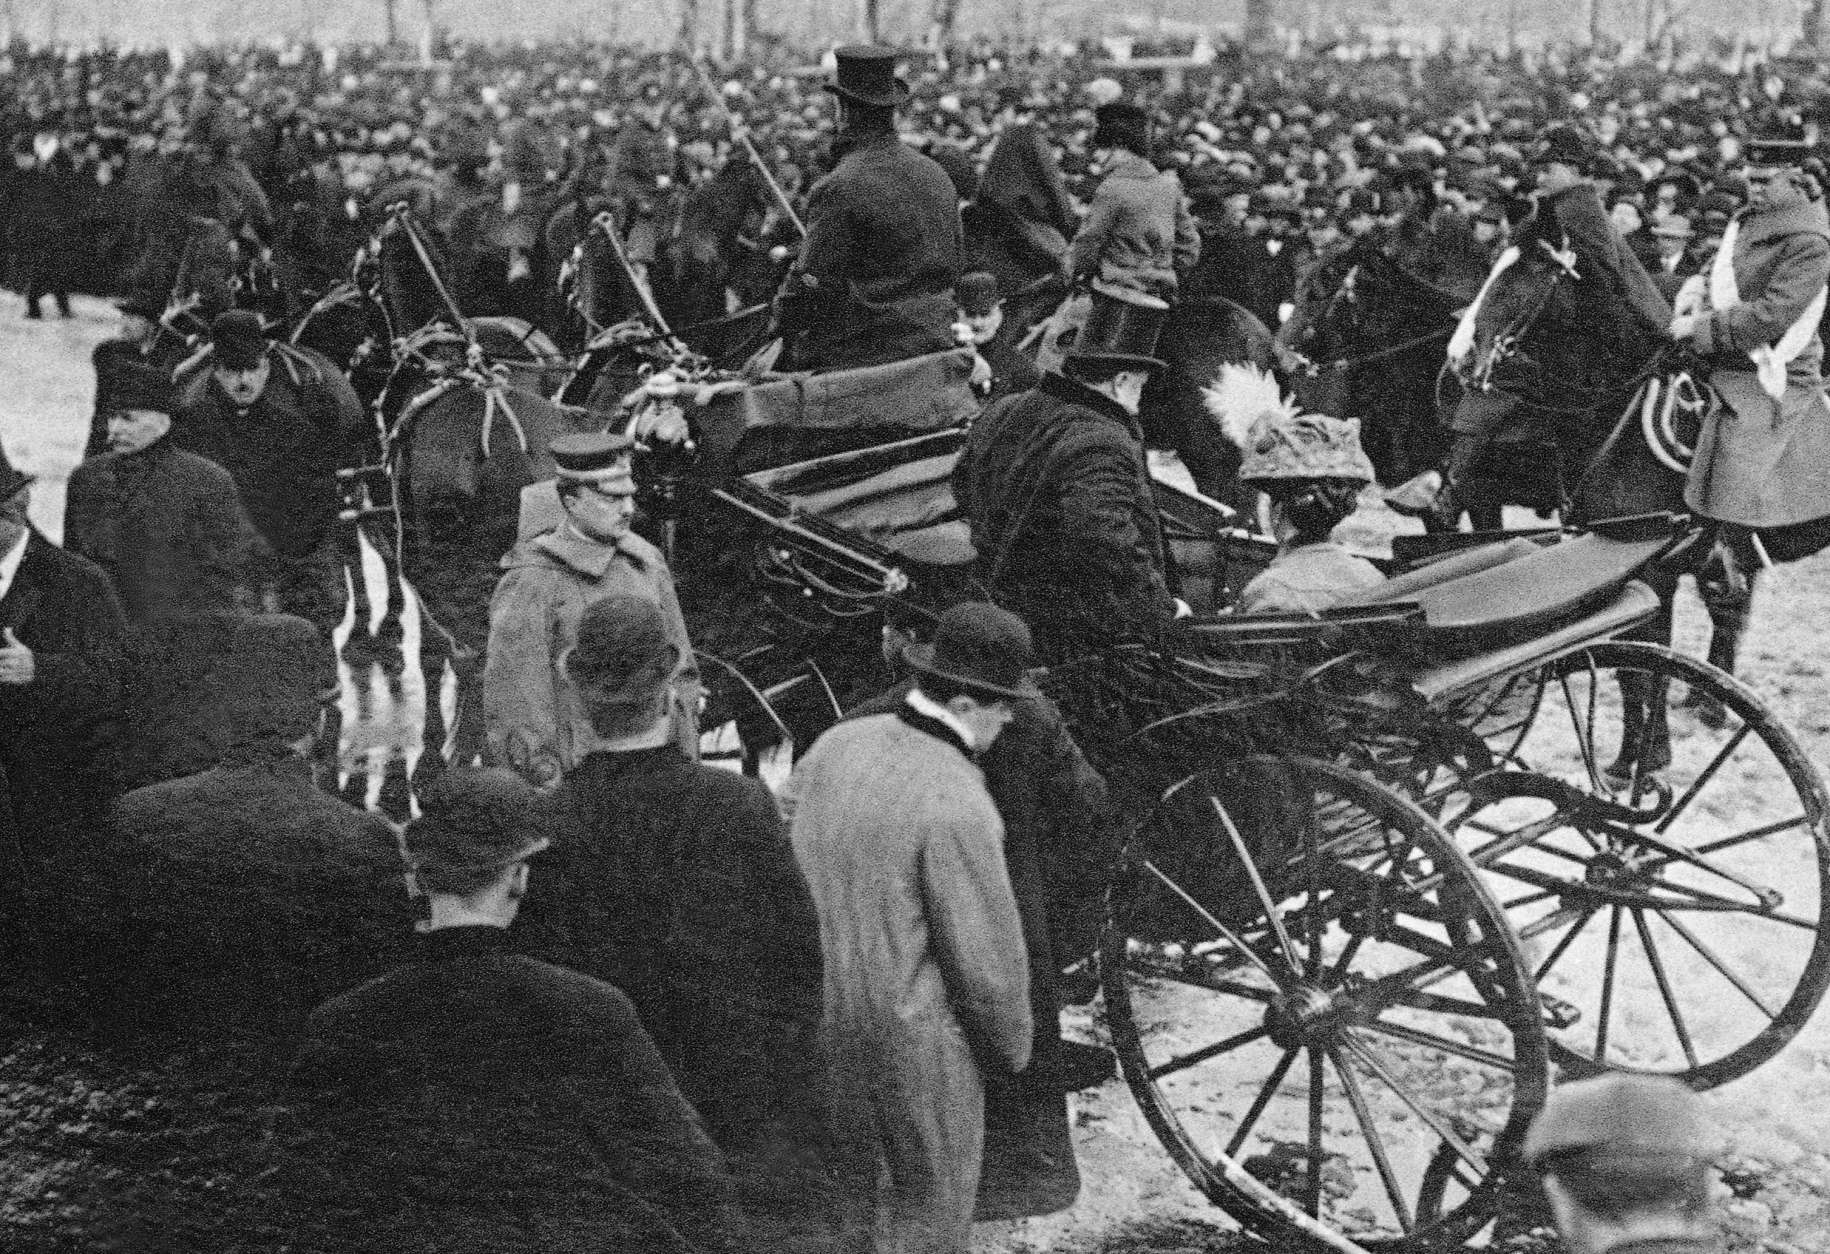 President William Howard Taft  enters a horse draw carriage to sit beside his wife Helen after Inaugural  ceremonies at the Capitol where he was sworn in as the 27 President of the United States.    The inauguration took place in the Senate chamber because of a blizzard on March 4, 1909.   For the first time, the president's wife accompanied her husband on the return ride in the procession from the Capitol to the White House following his Inauguration.    (AP Photo/Library of Congress)